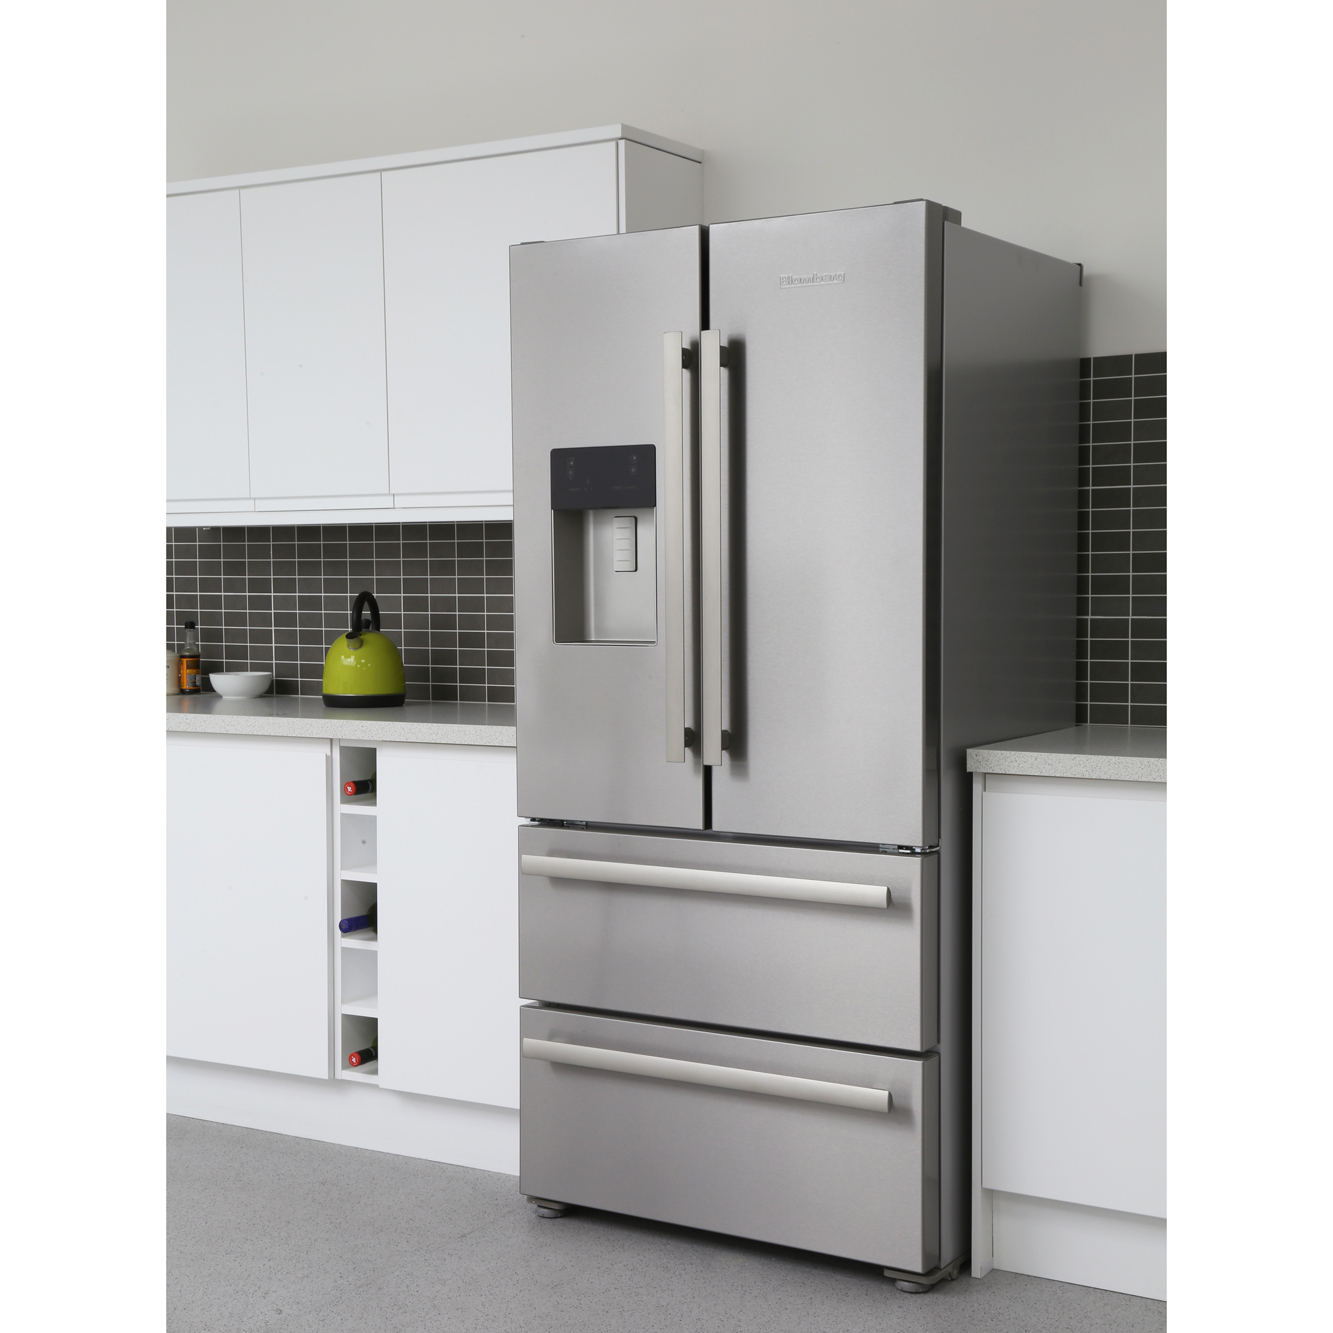 Good American Fridge Freezer With Drawers Part - 9: Blomberg KFD4952XD American Fridge Freezer